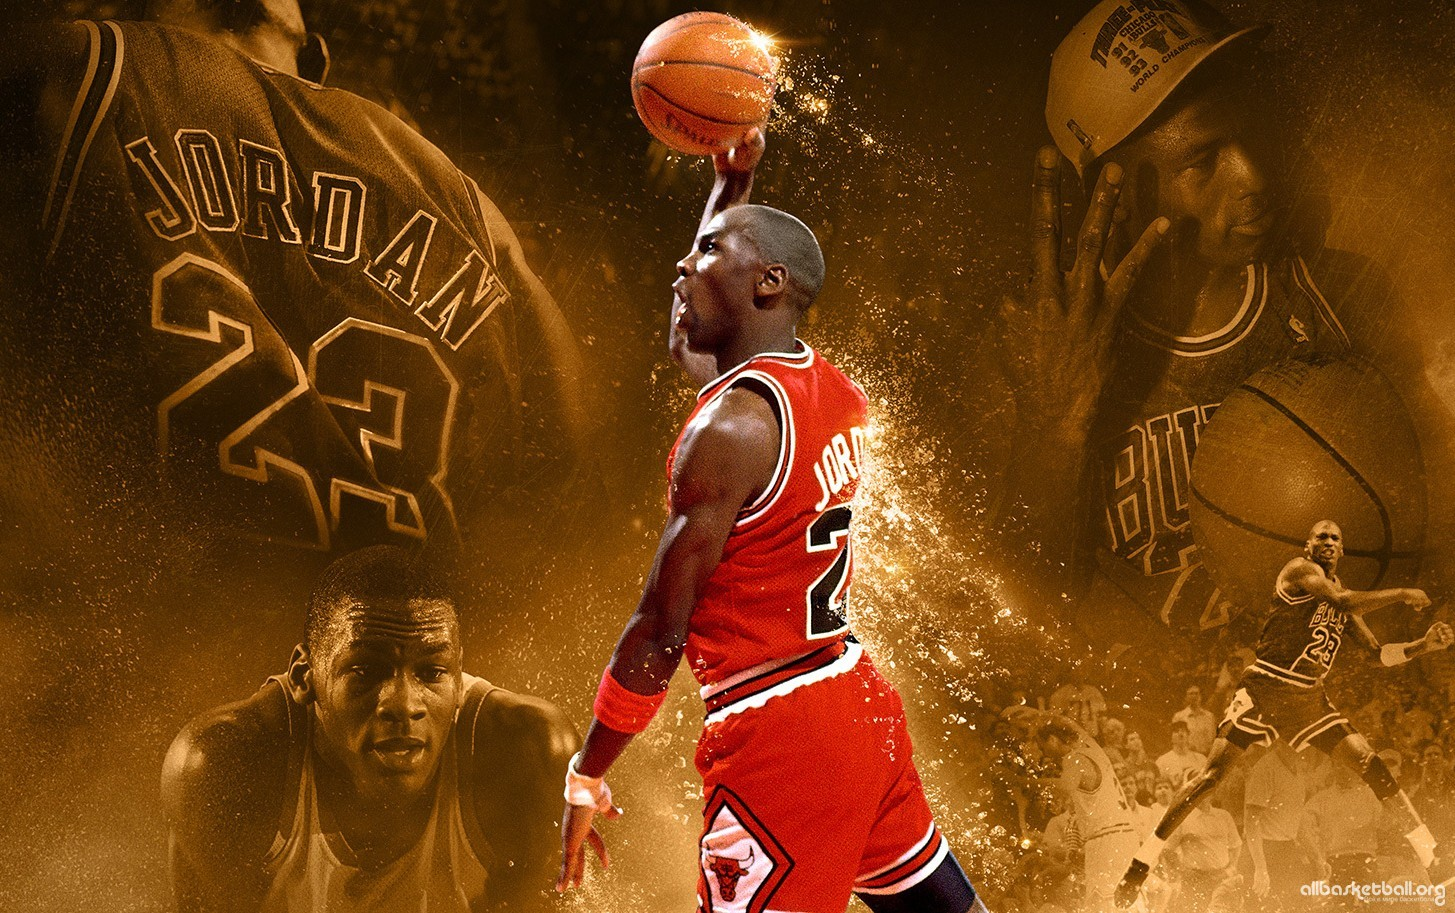 Nba Wallpapers Hd: NBA 2K16 HD Wallpapers Free Download